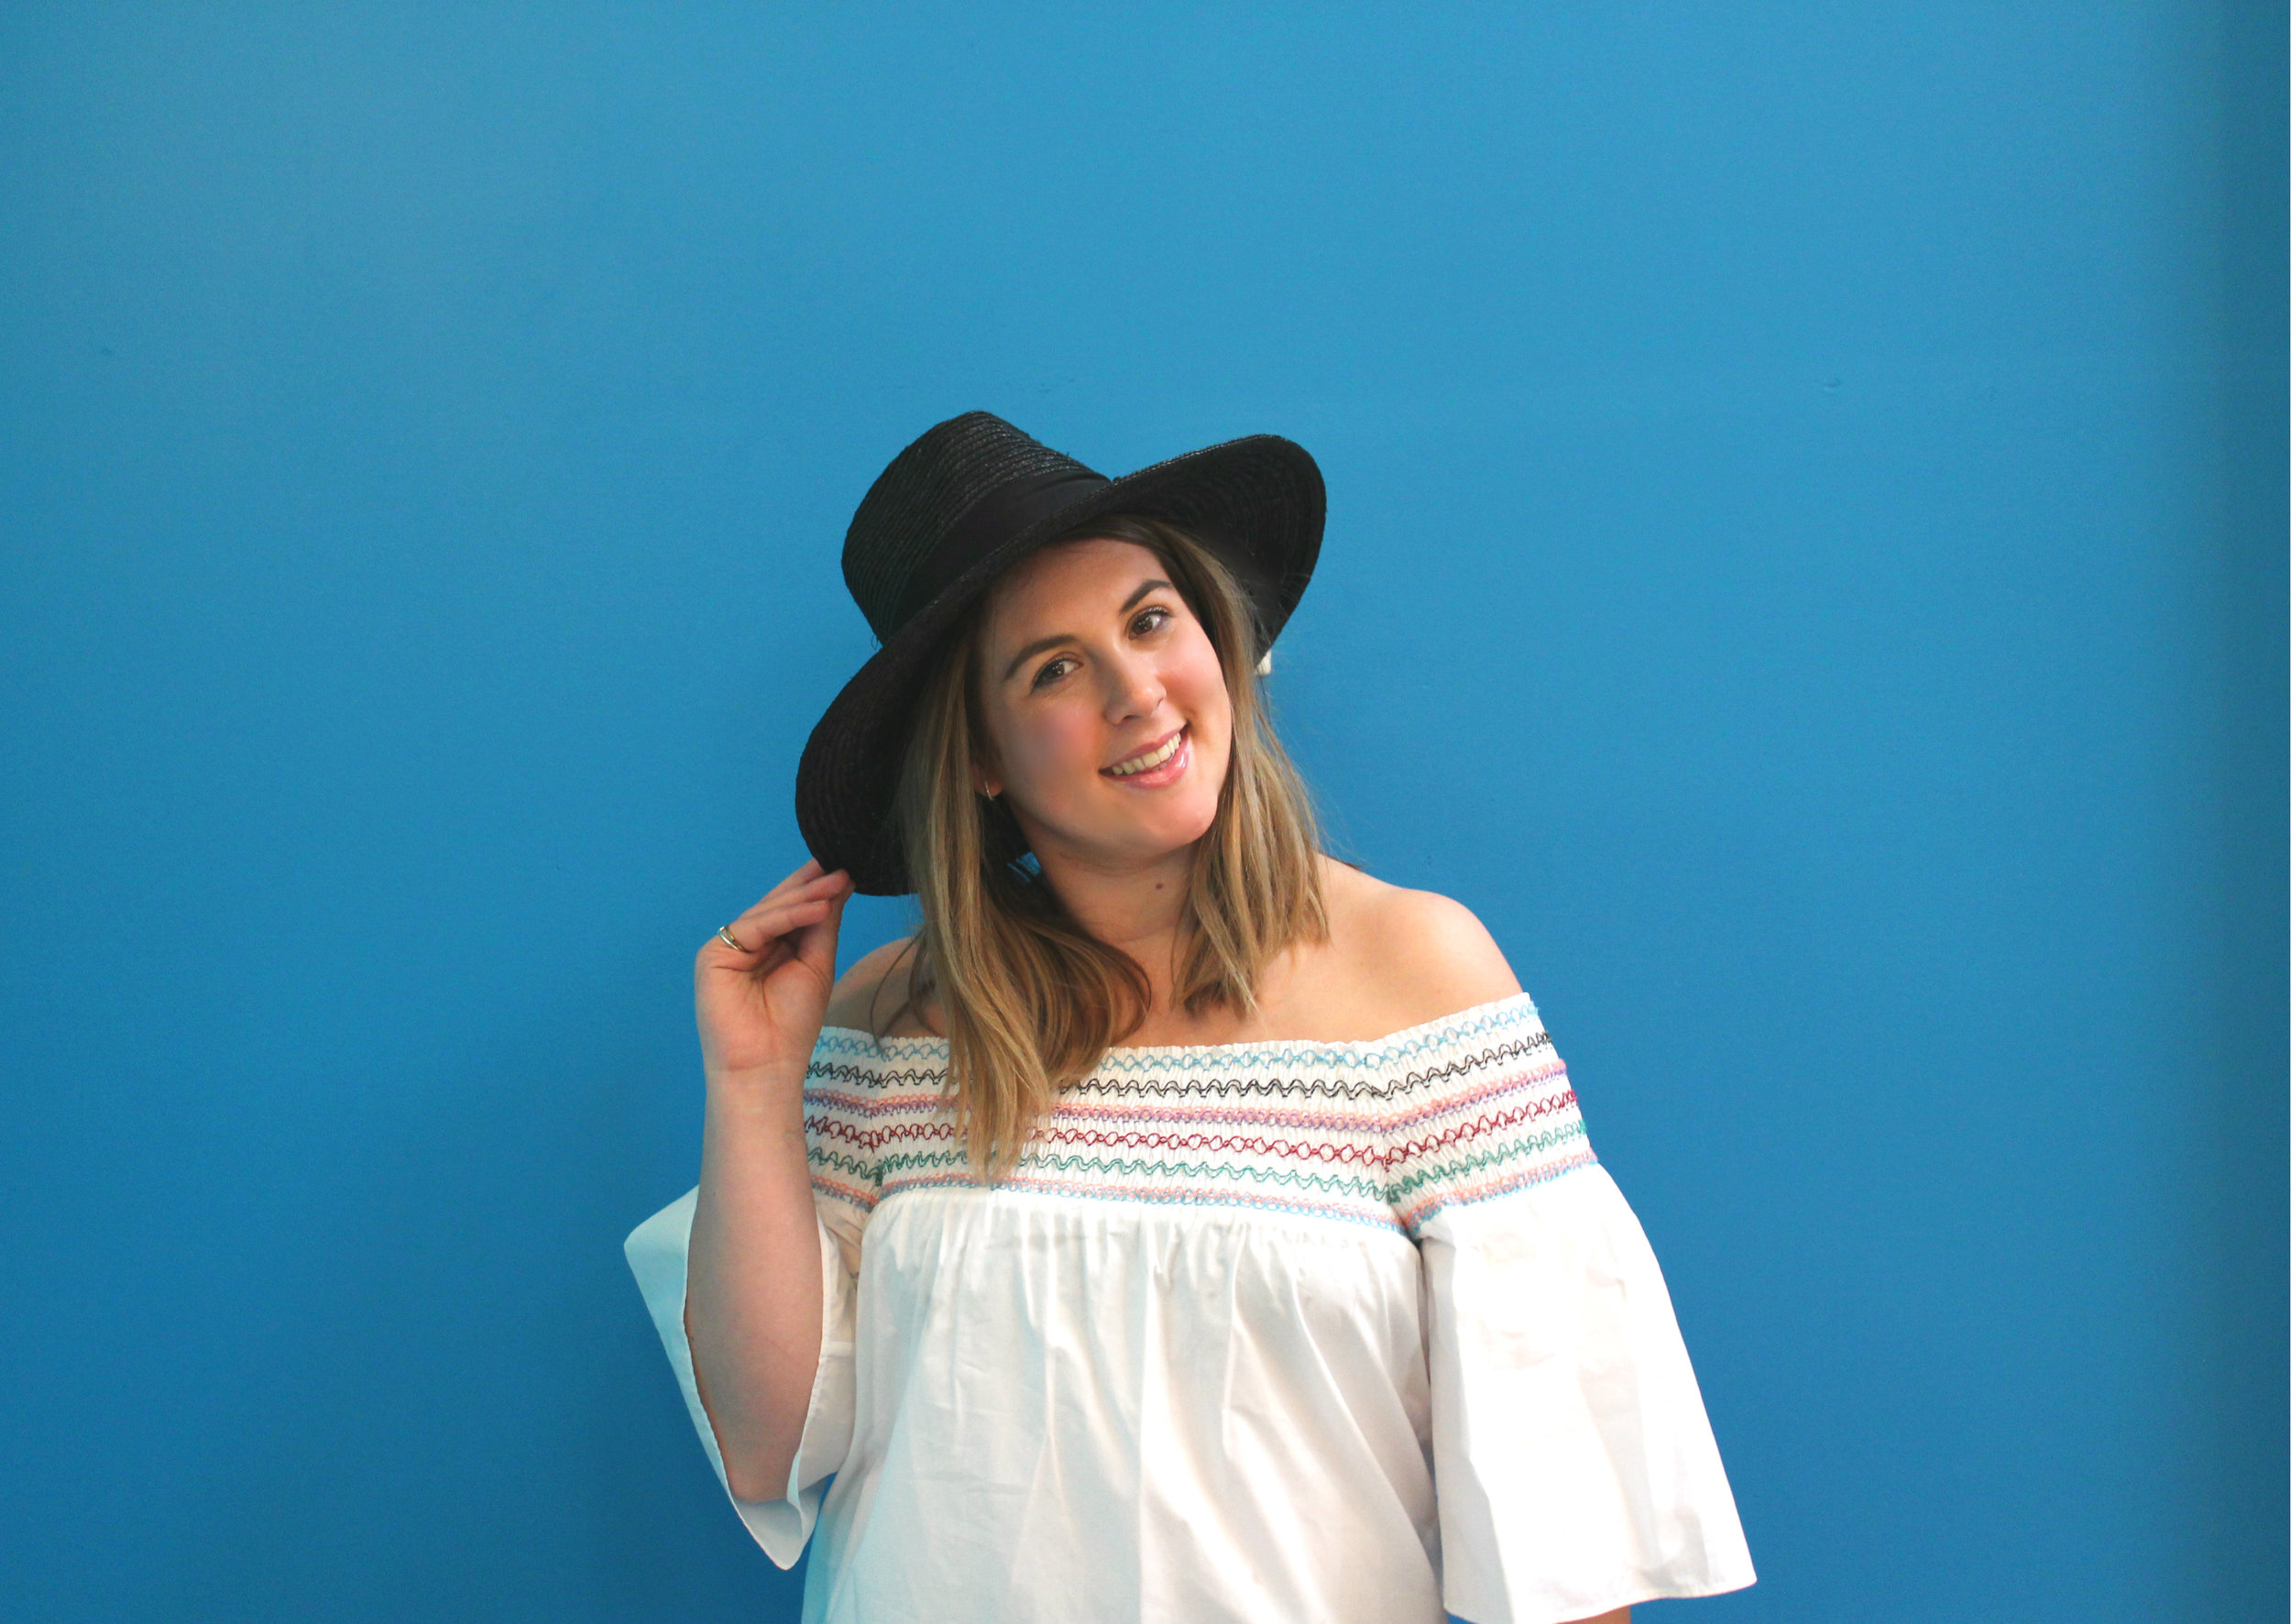 Parker Off The Shoulder Top $198 Brixton Straw Hat $55